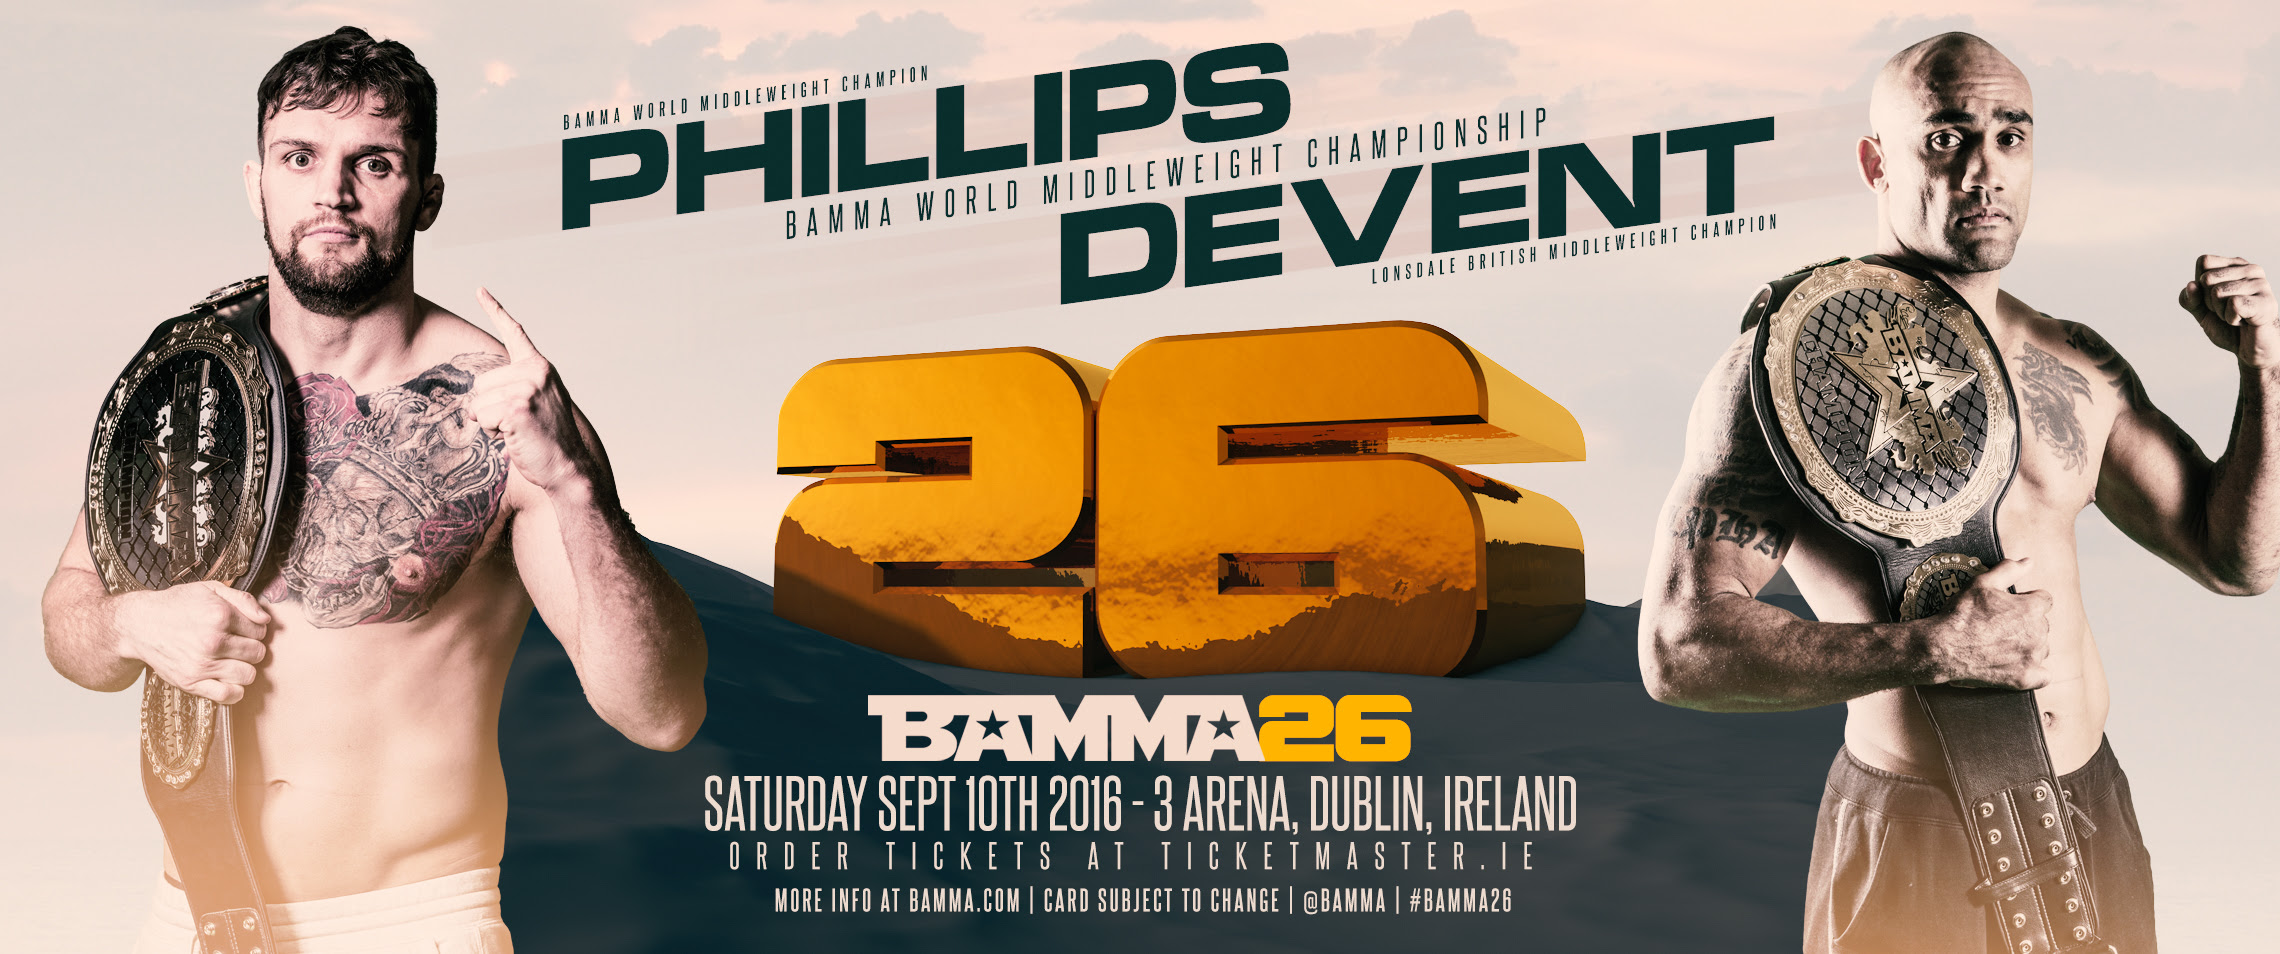 Phillips_vs_DeVent_BAMMA 26_Poster